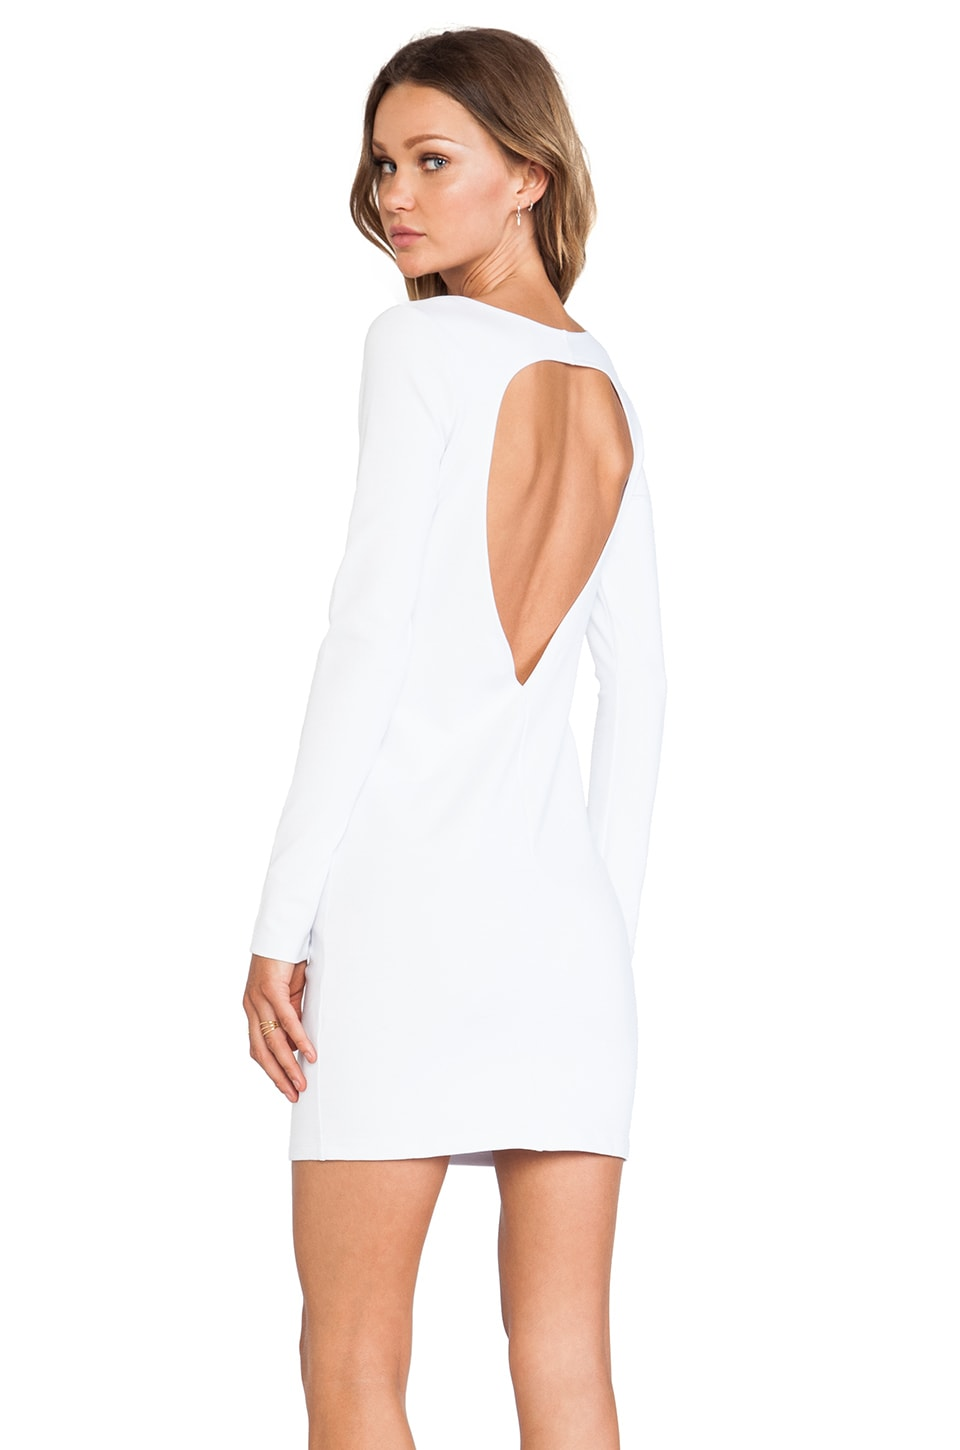 BLQ BASIQ BLQ Basics Cut Out Back Long Sleeve Dress in White